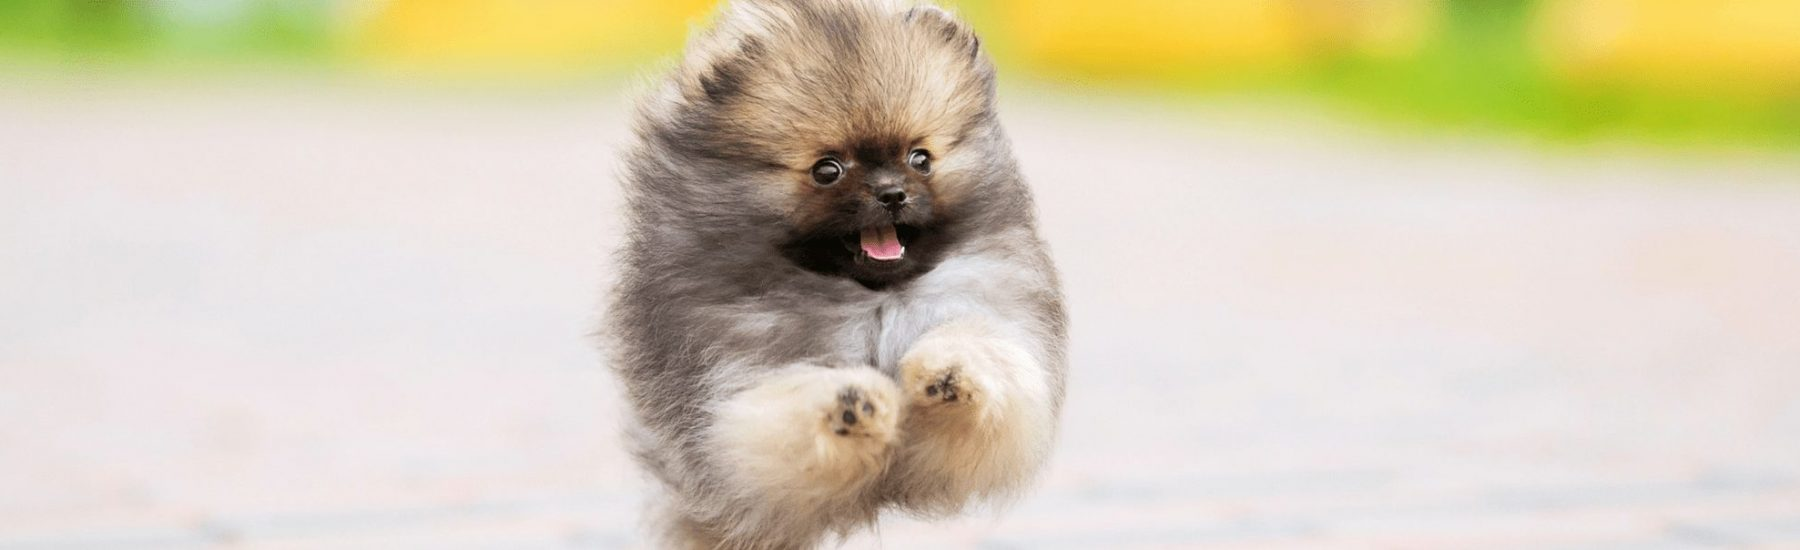 A Pomeranian dog running